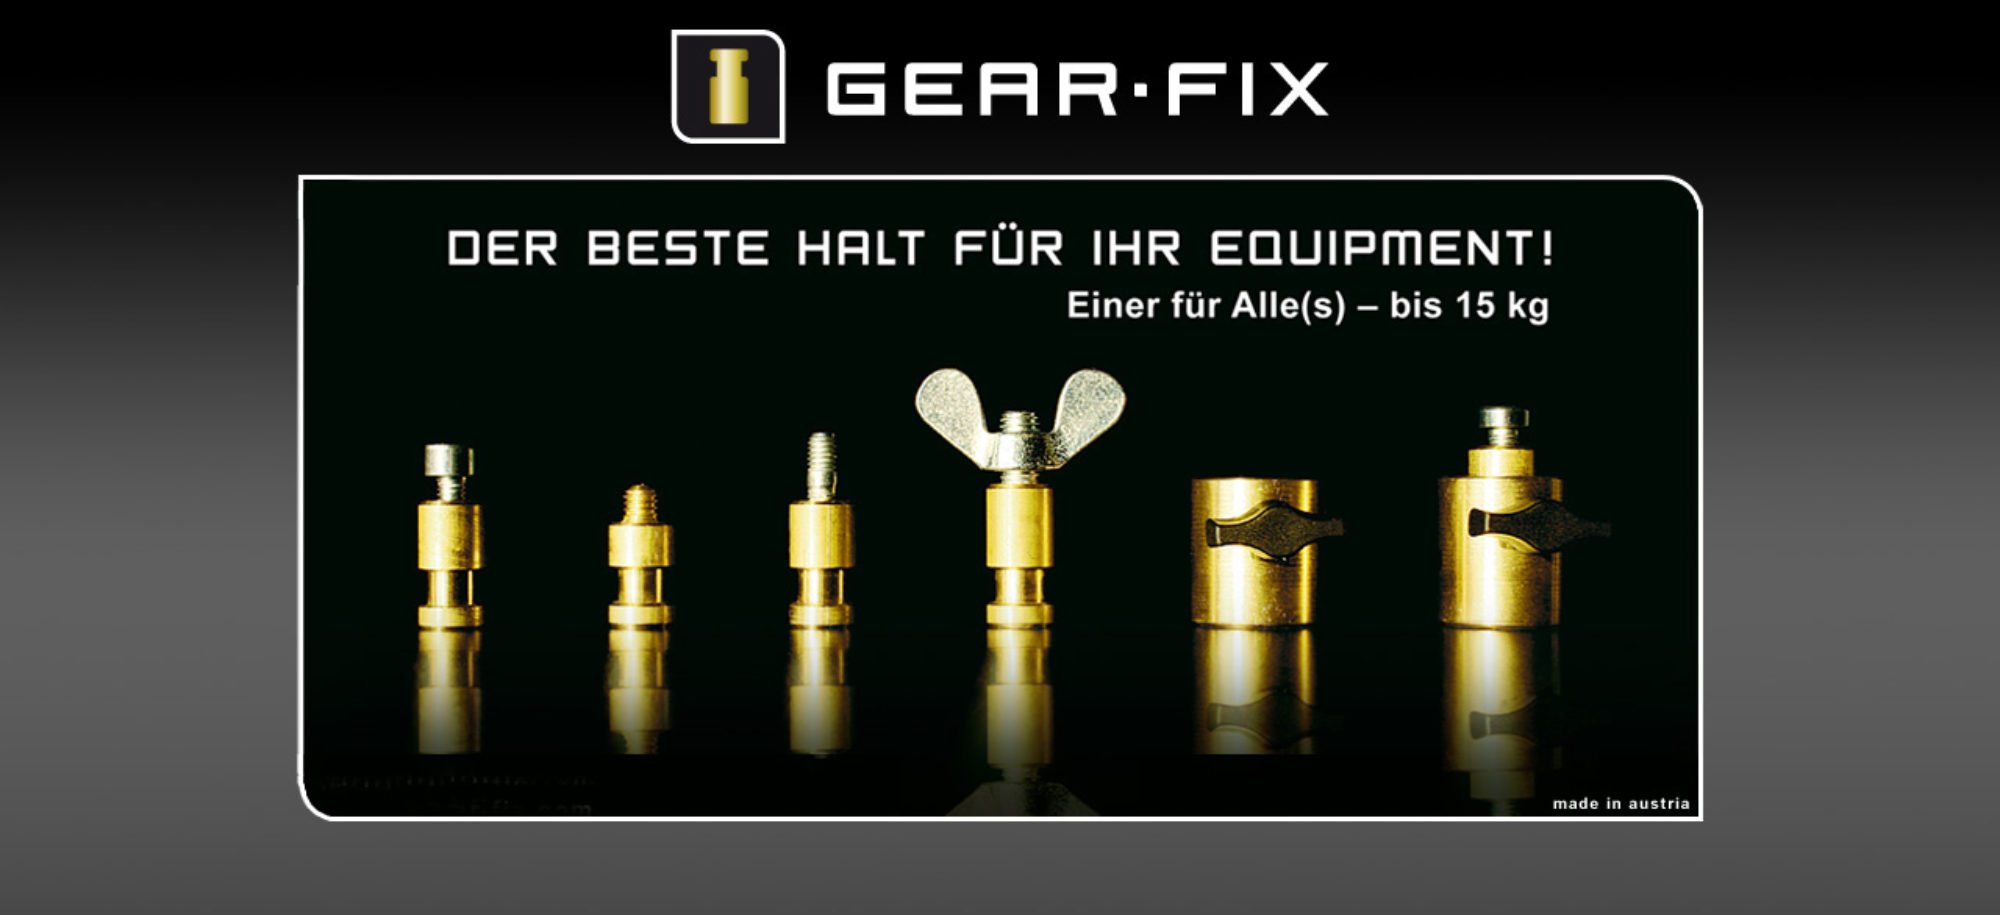 gearfix.at